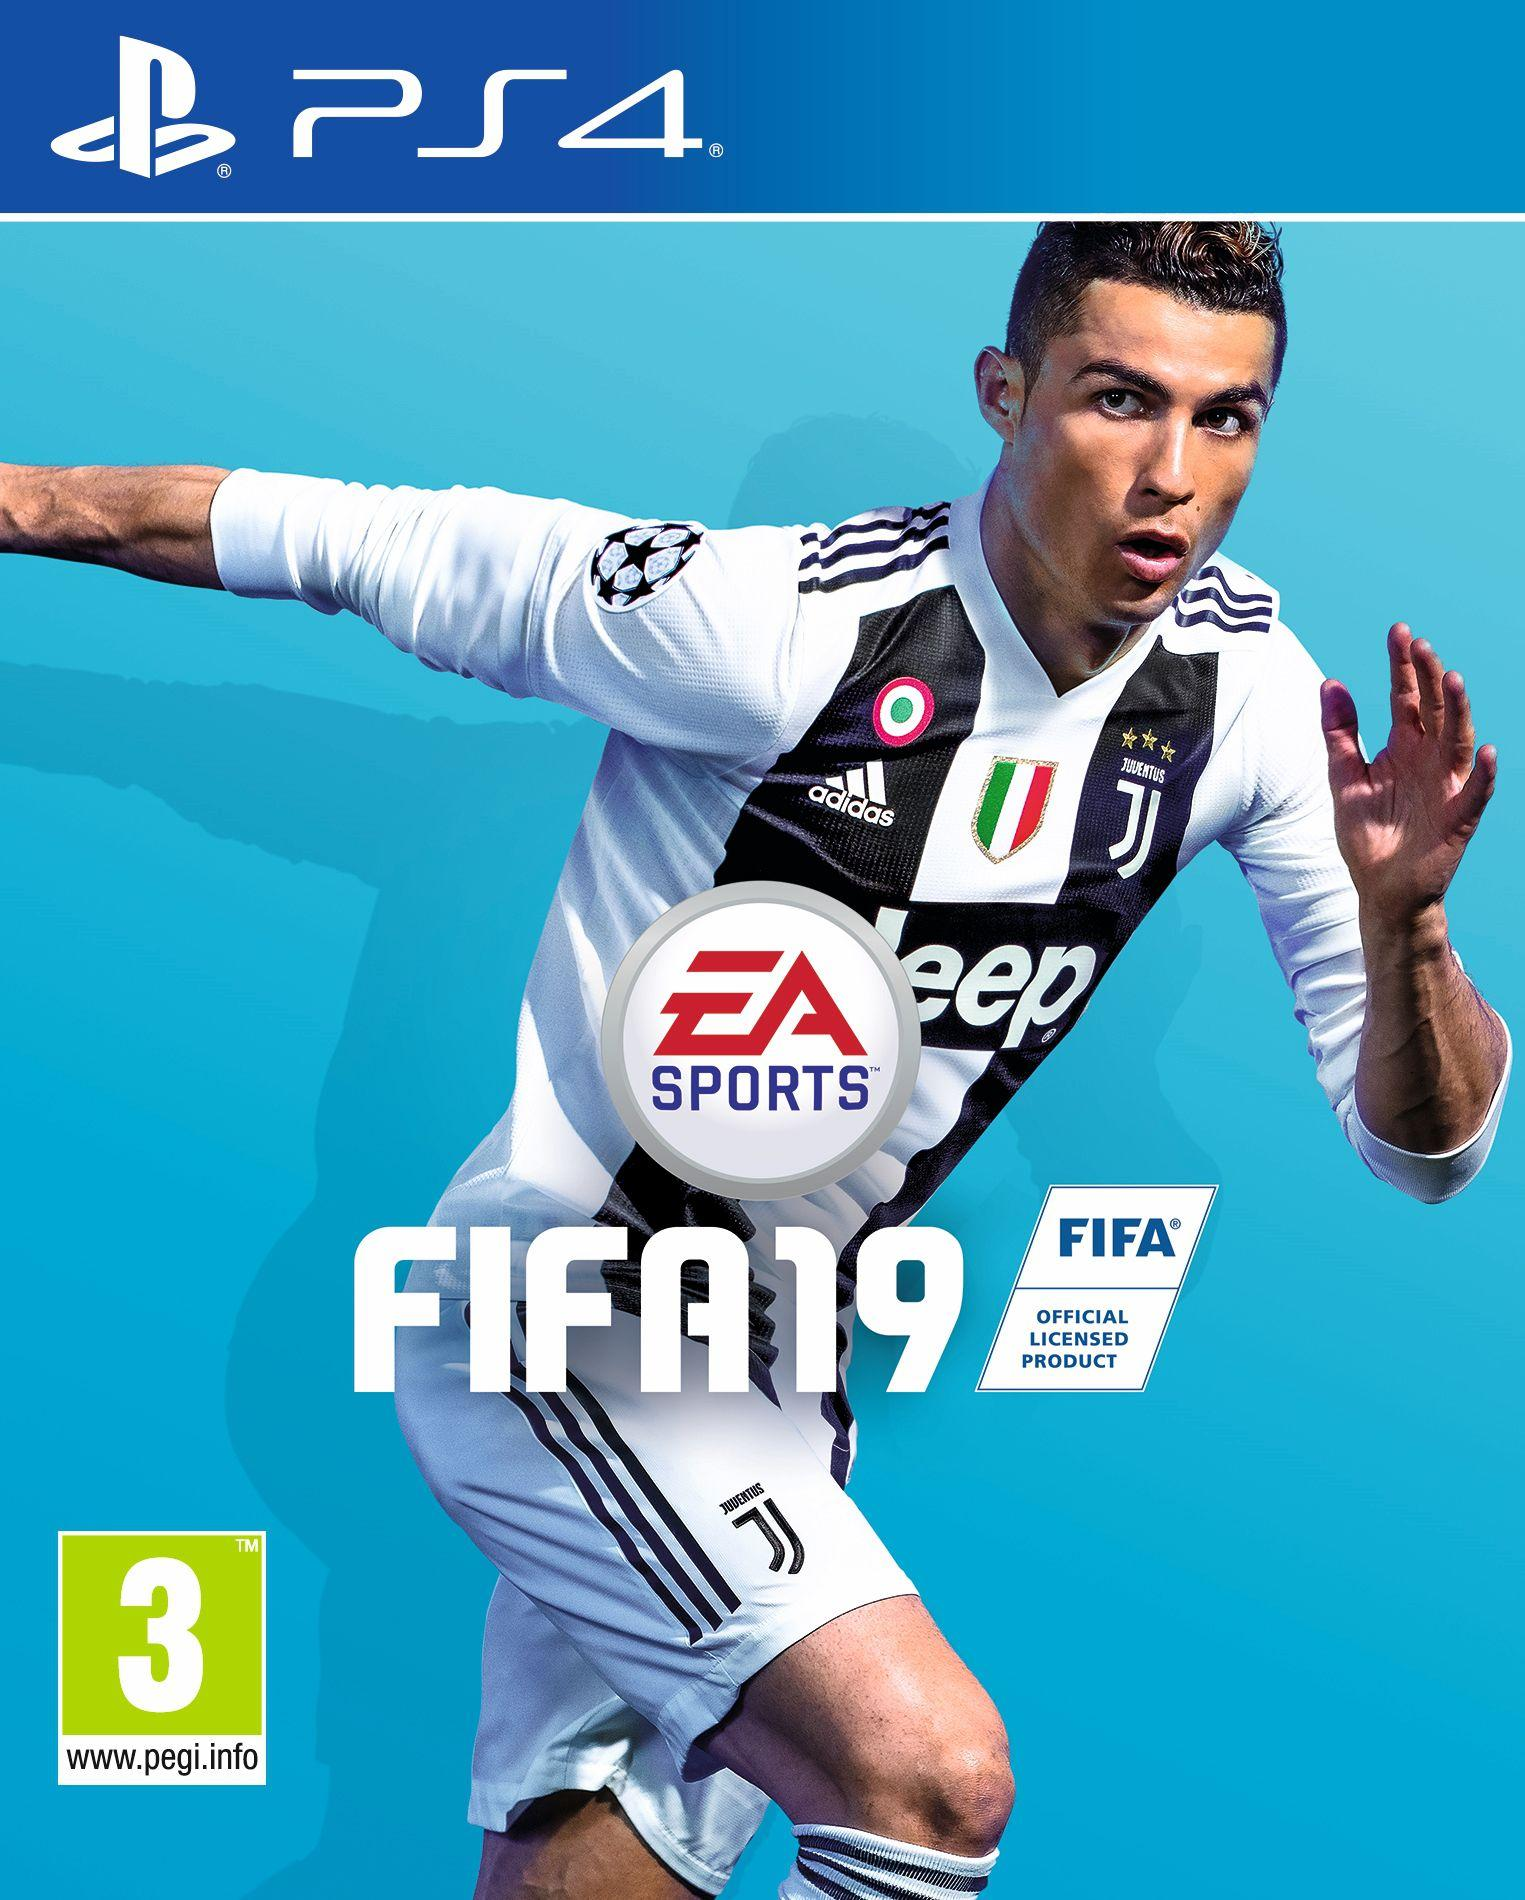 Ronaldo has been removed from the online branding for Fifa19